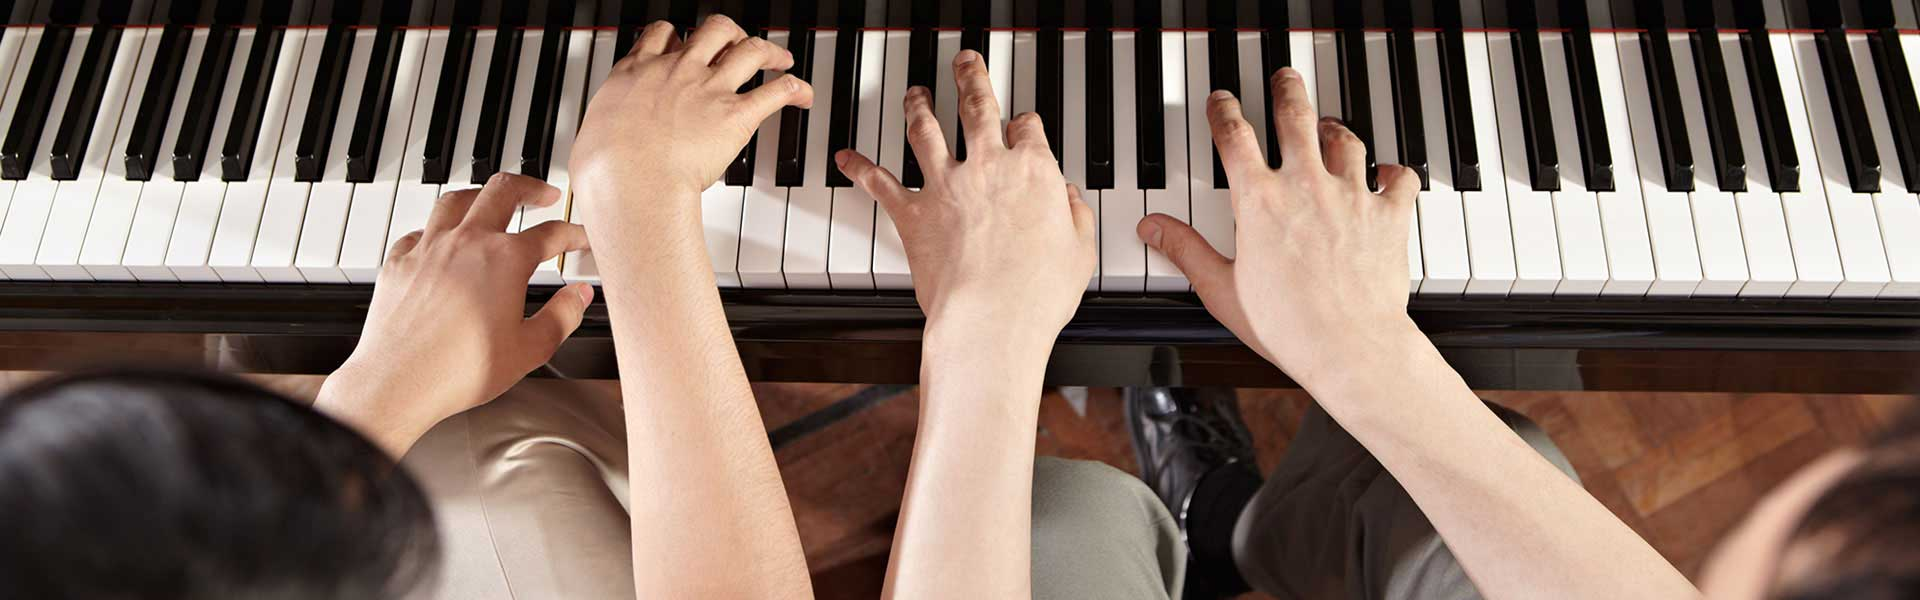 Piano Rental at Riverton Piano Company